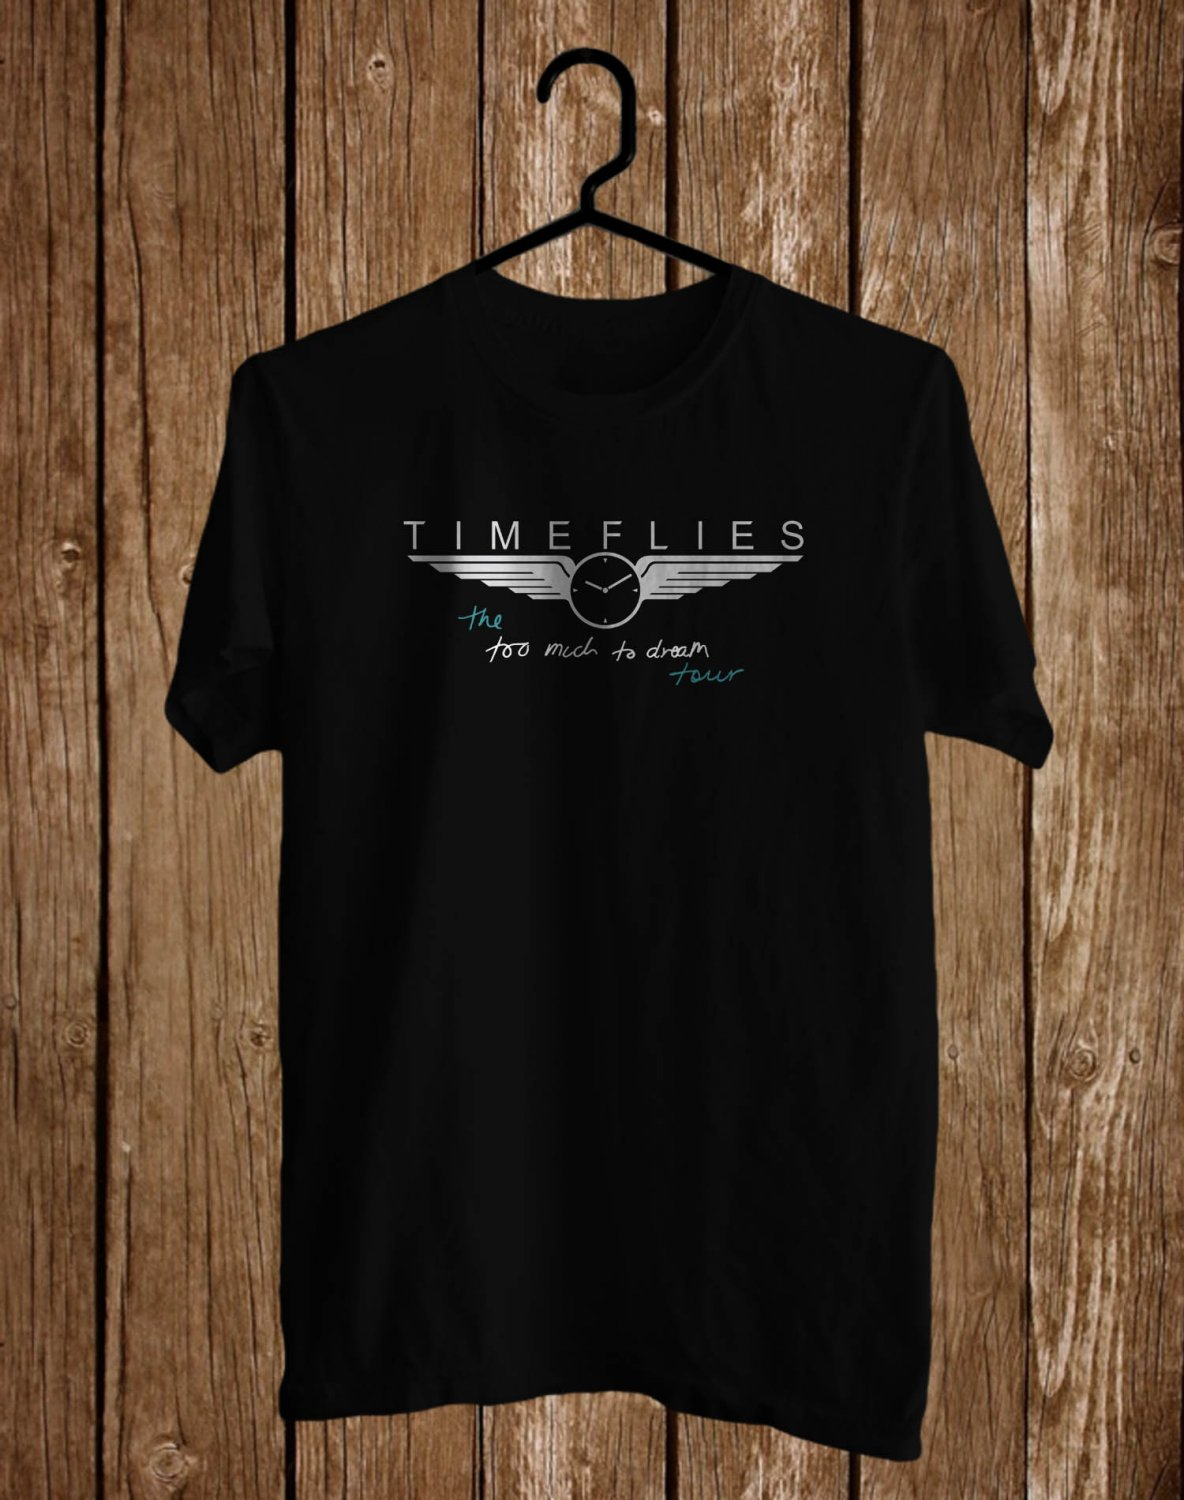 Timeflies Too Much Too Dream Logo Tour 2017 Black Tee's Front Side by Complexart